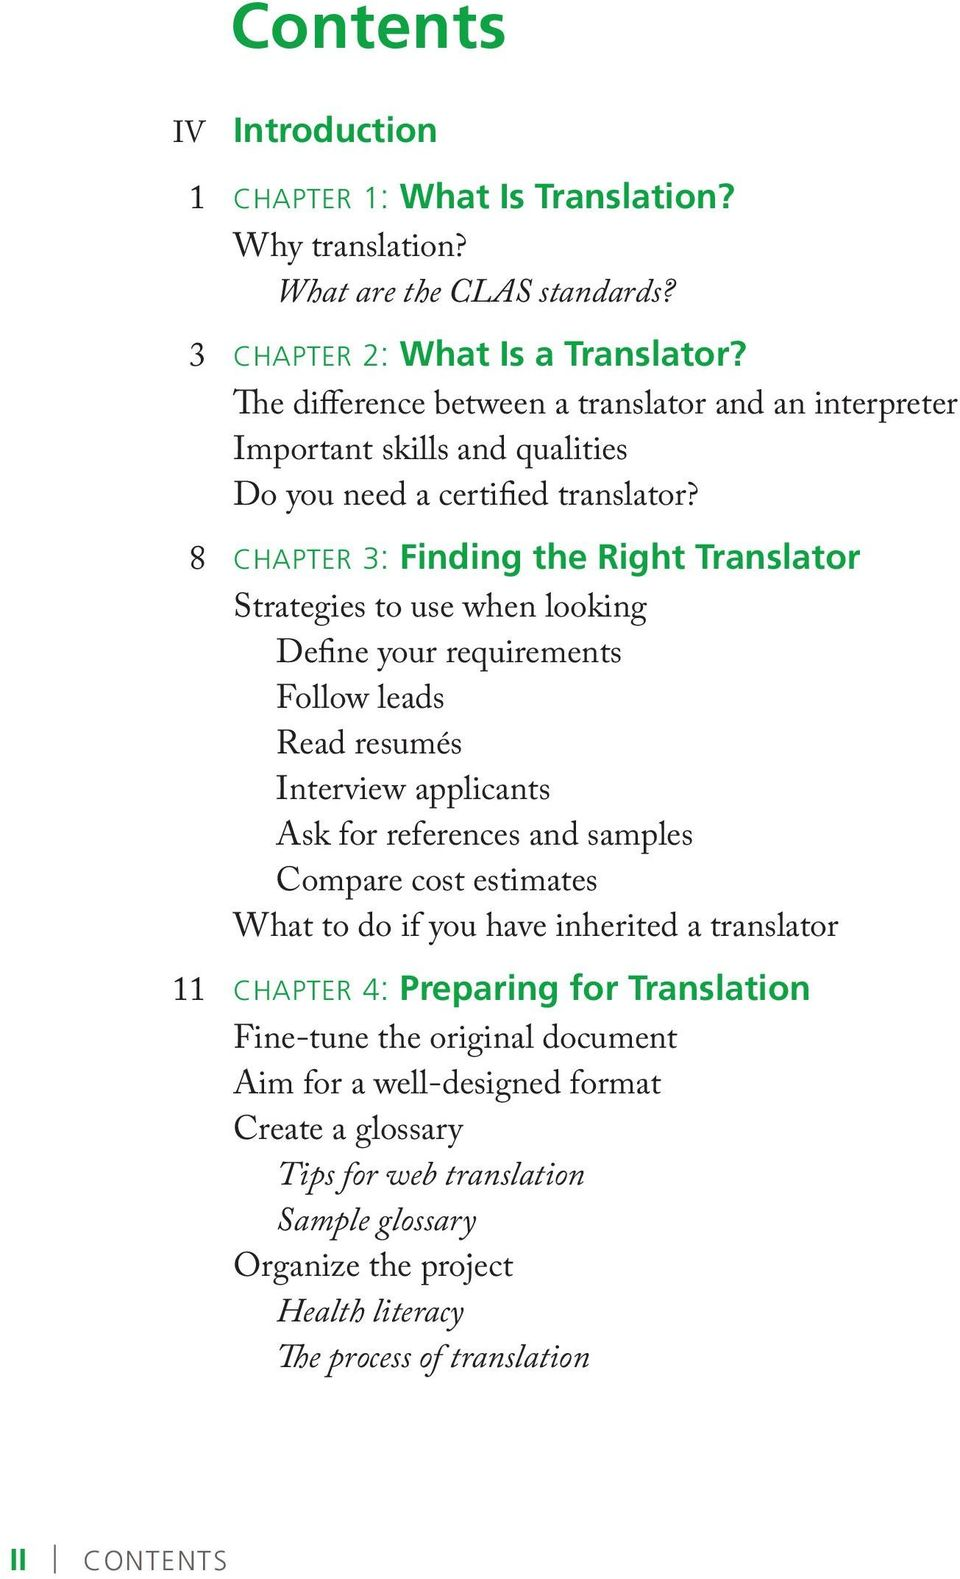 8 CHAPTER 3: Finding the Right Translator Strategies to use when looking Define your requirements Follow leads Read resumés Interview applicants Ask for references and samples Compare